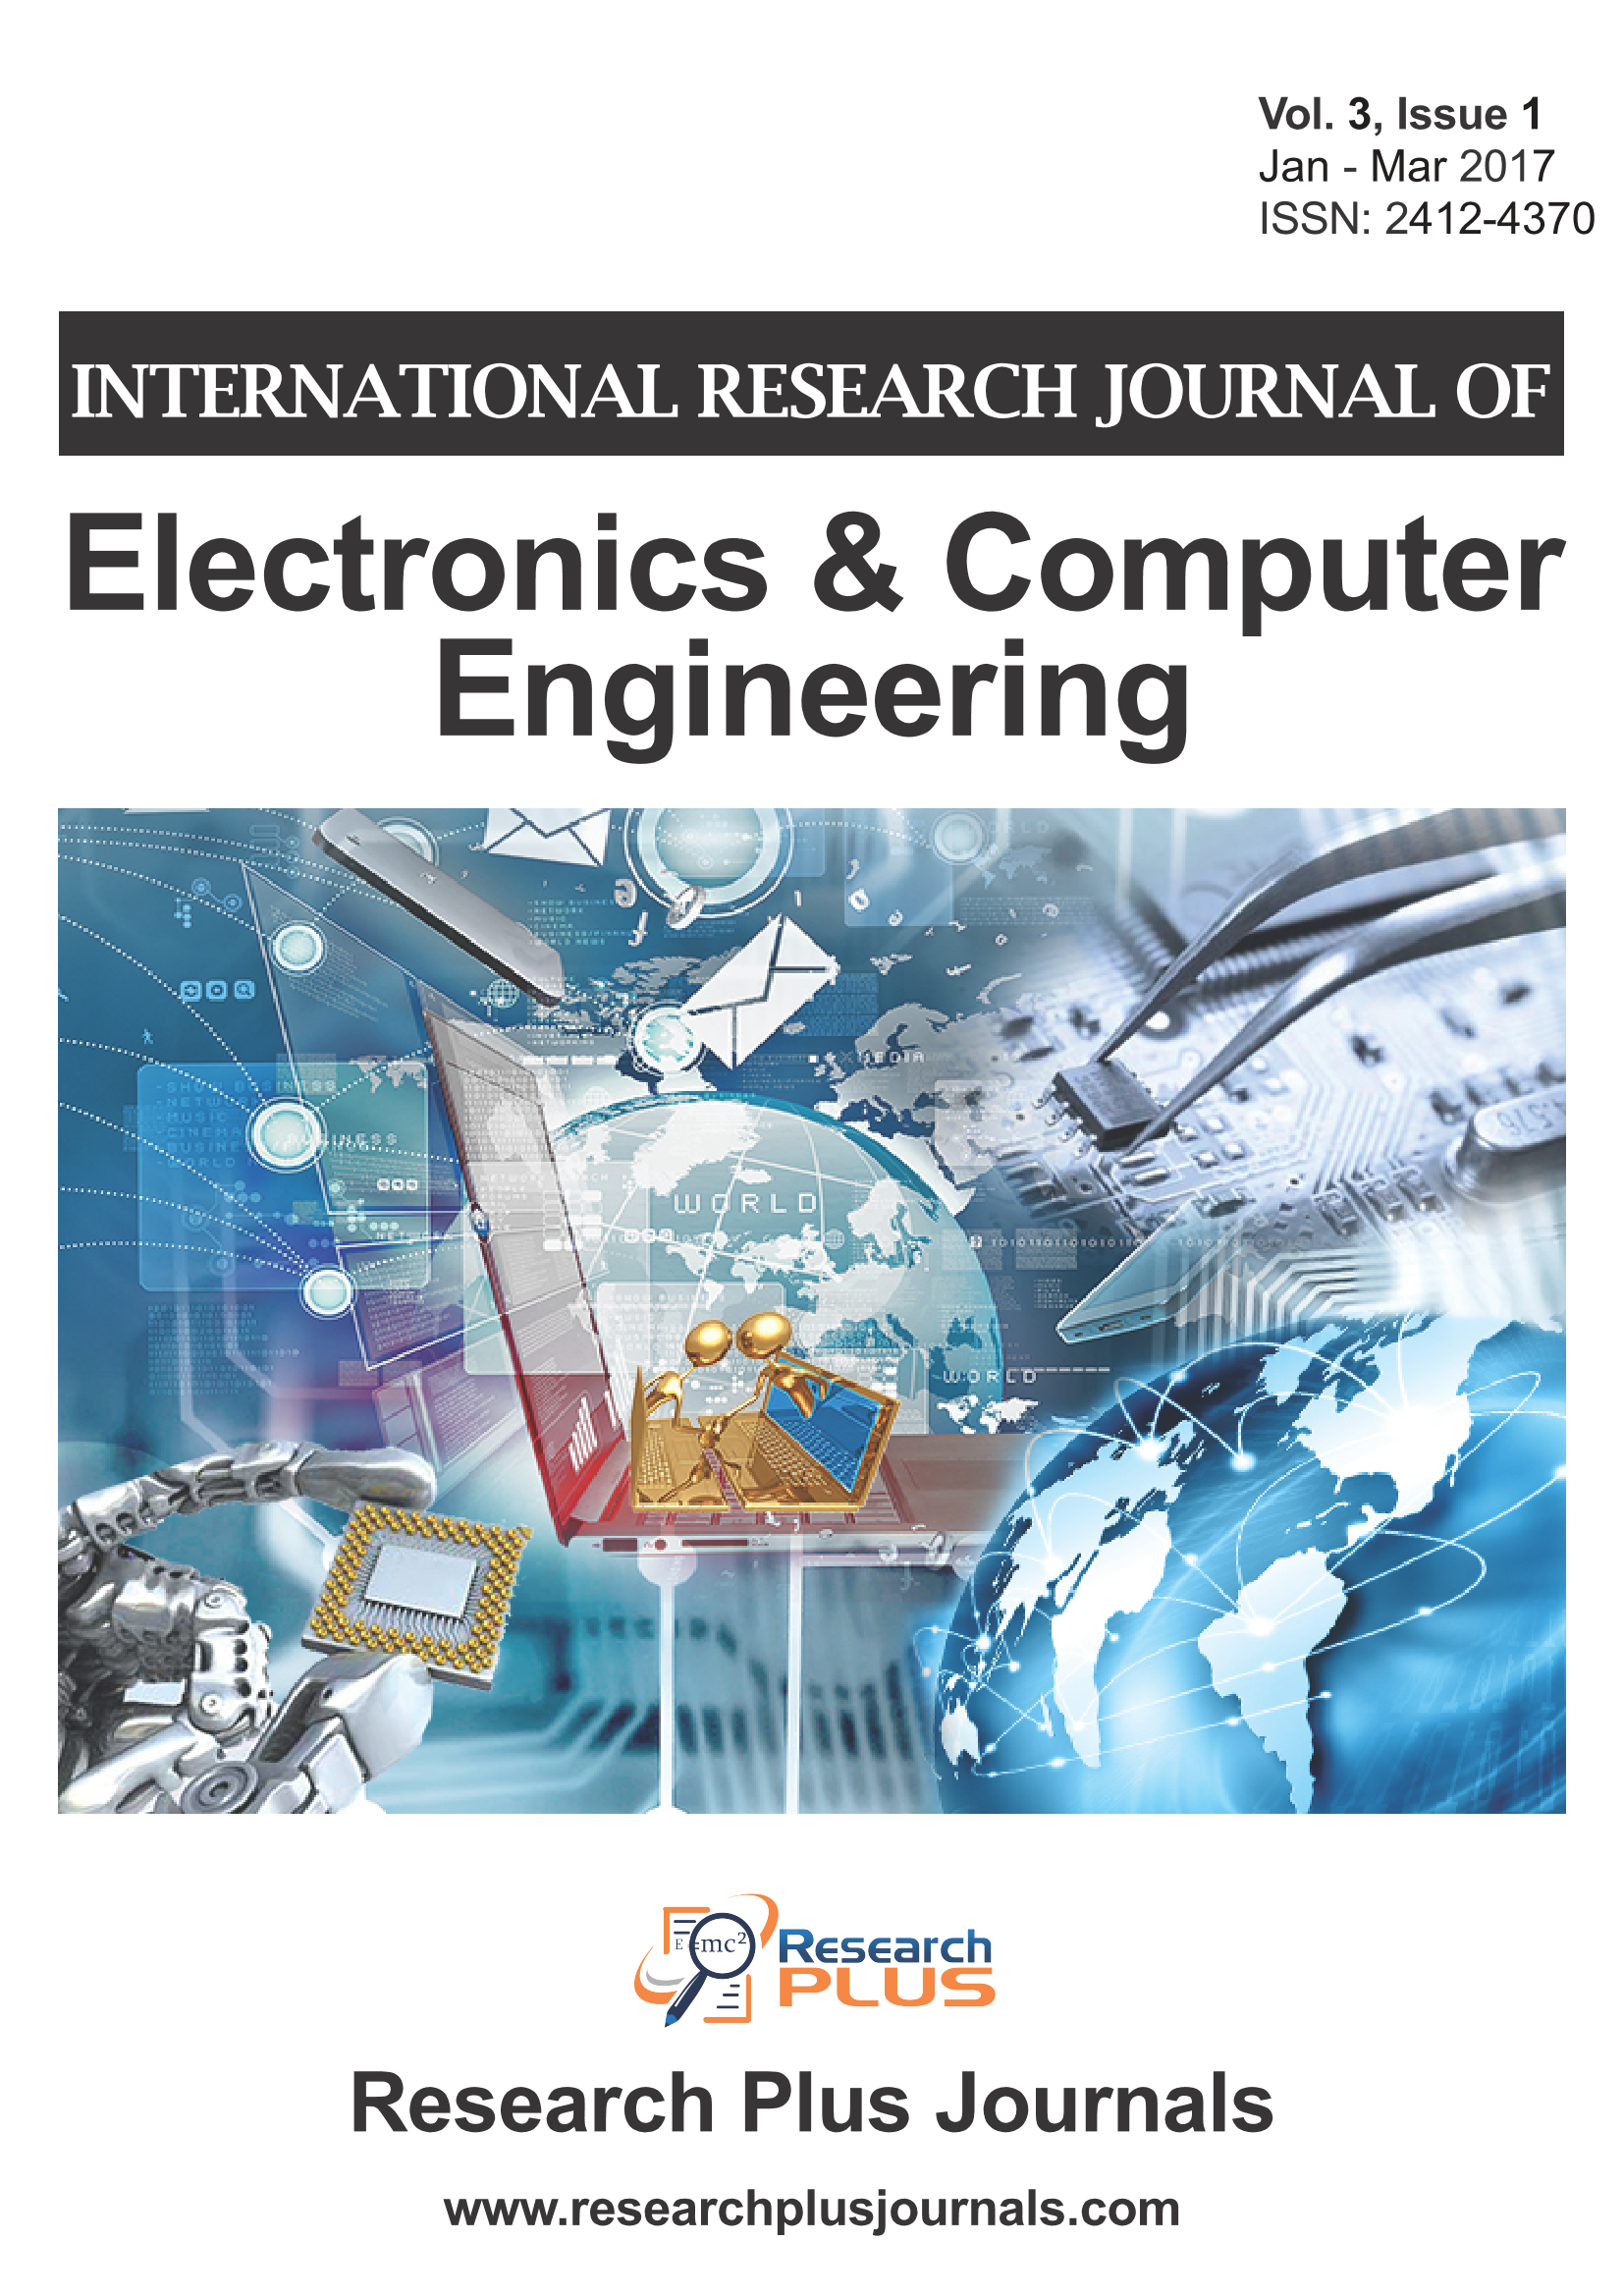 International Research Journal of Electronics & Computer Engineering (ISSN Online: 2412-4370)